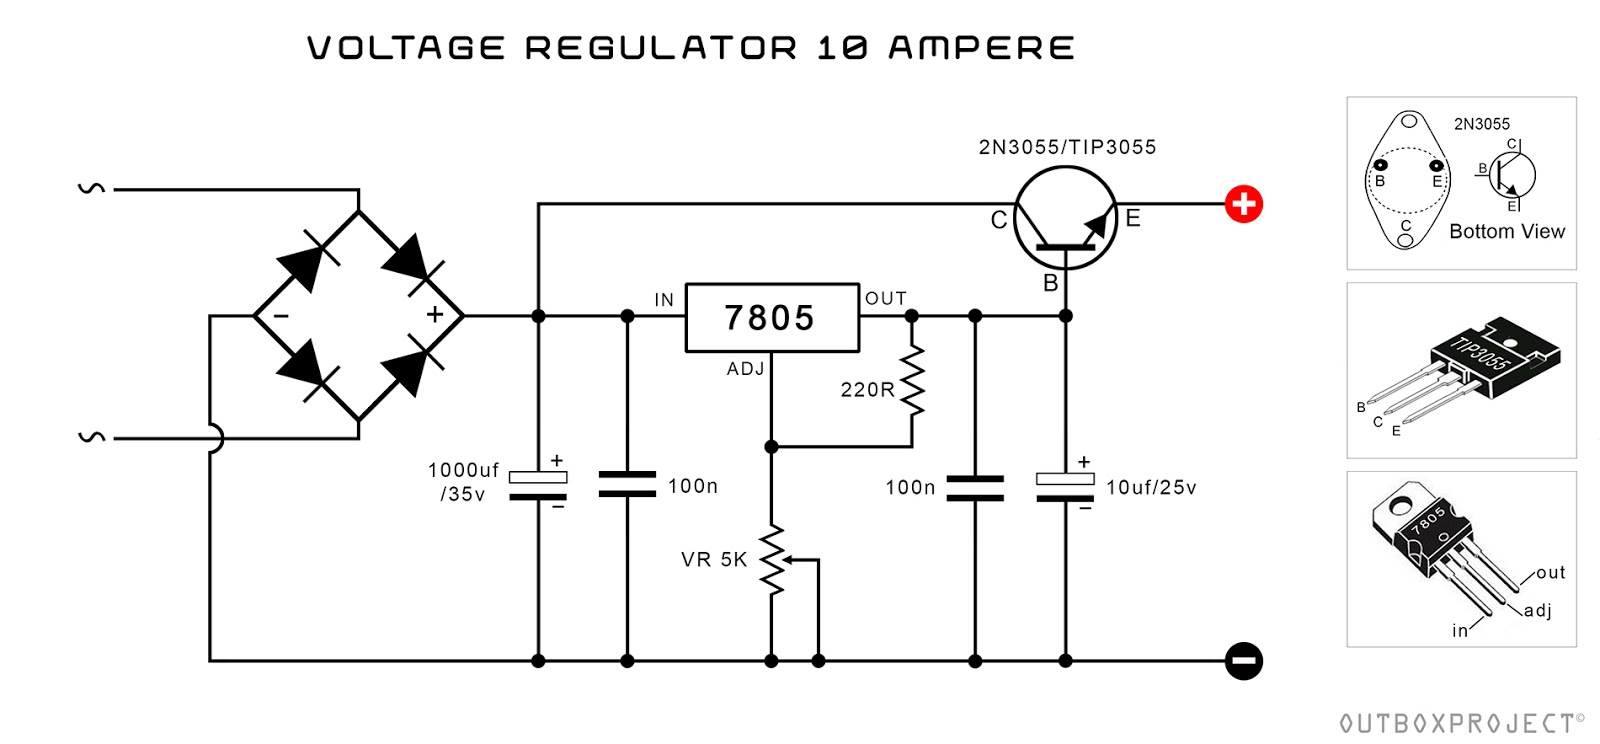 - OutBox Project: POWER SUPPLY REGULATOR 10 AMPERE